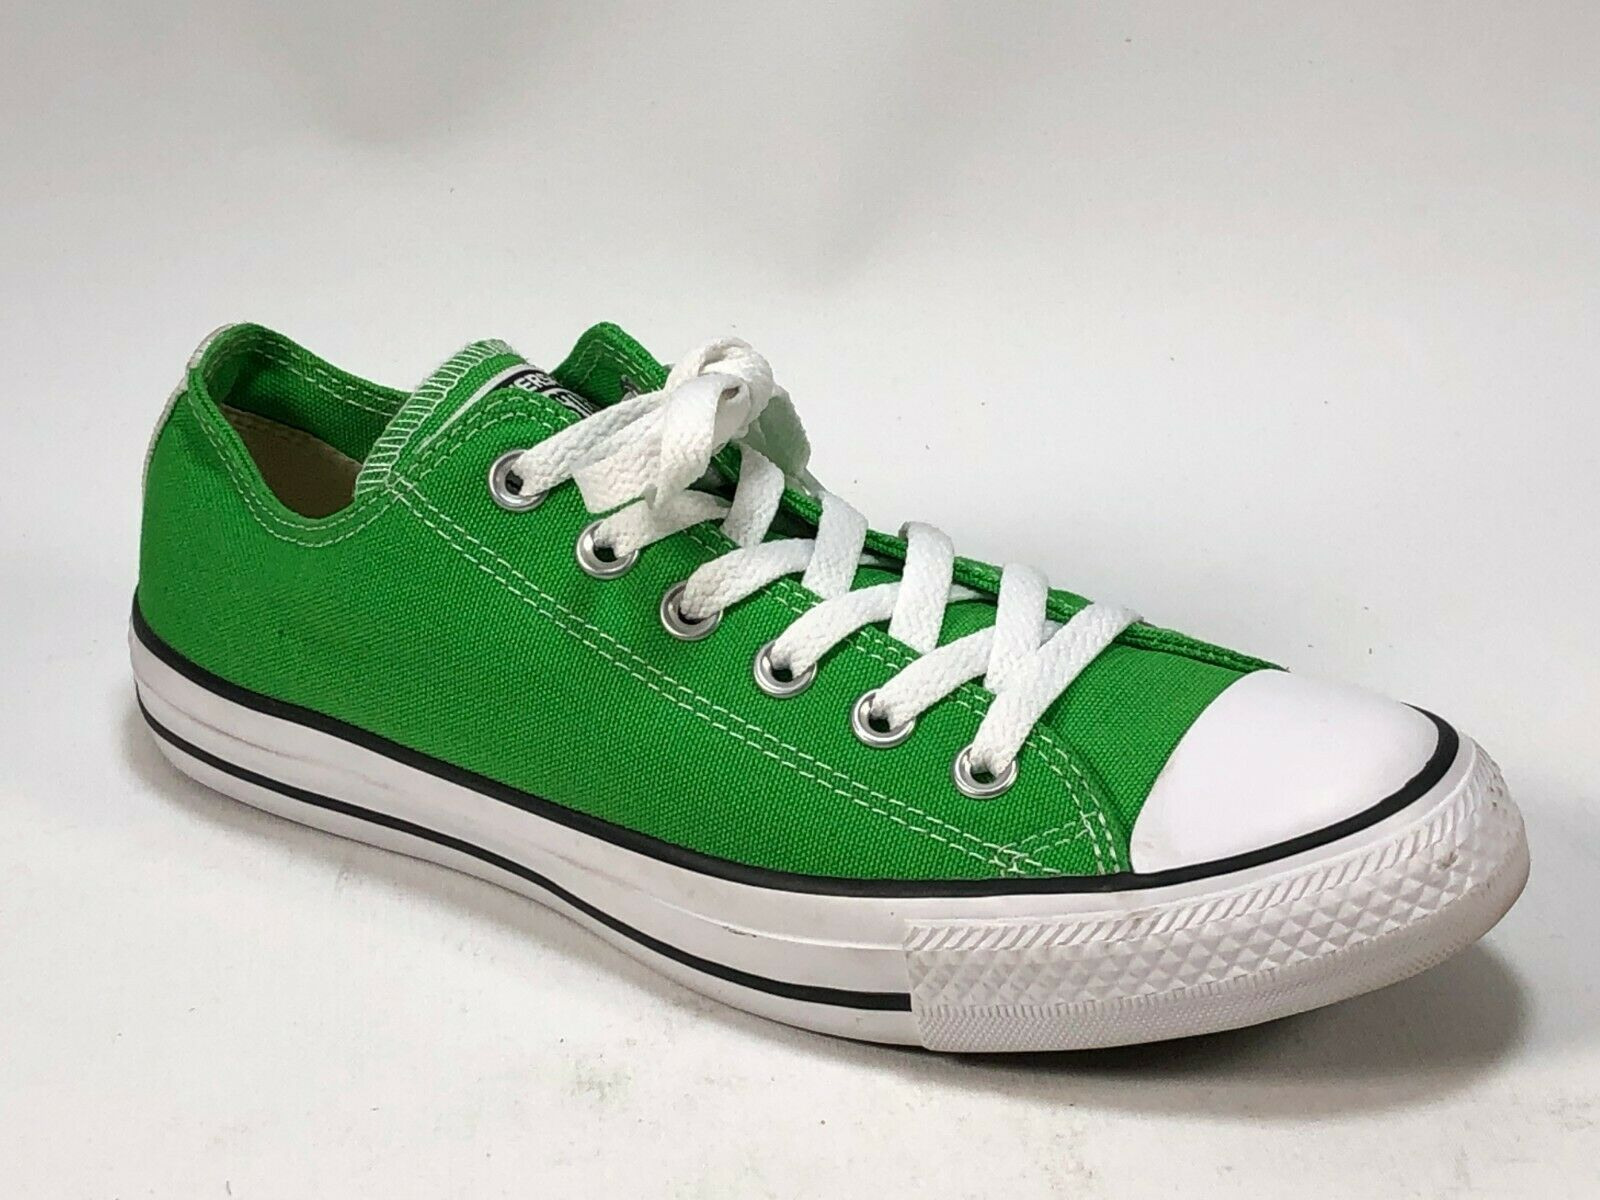 Pin on Converse Shoes for Women